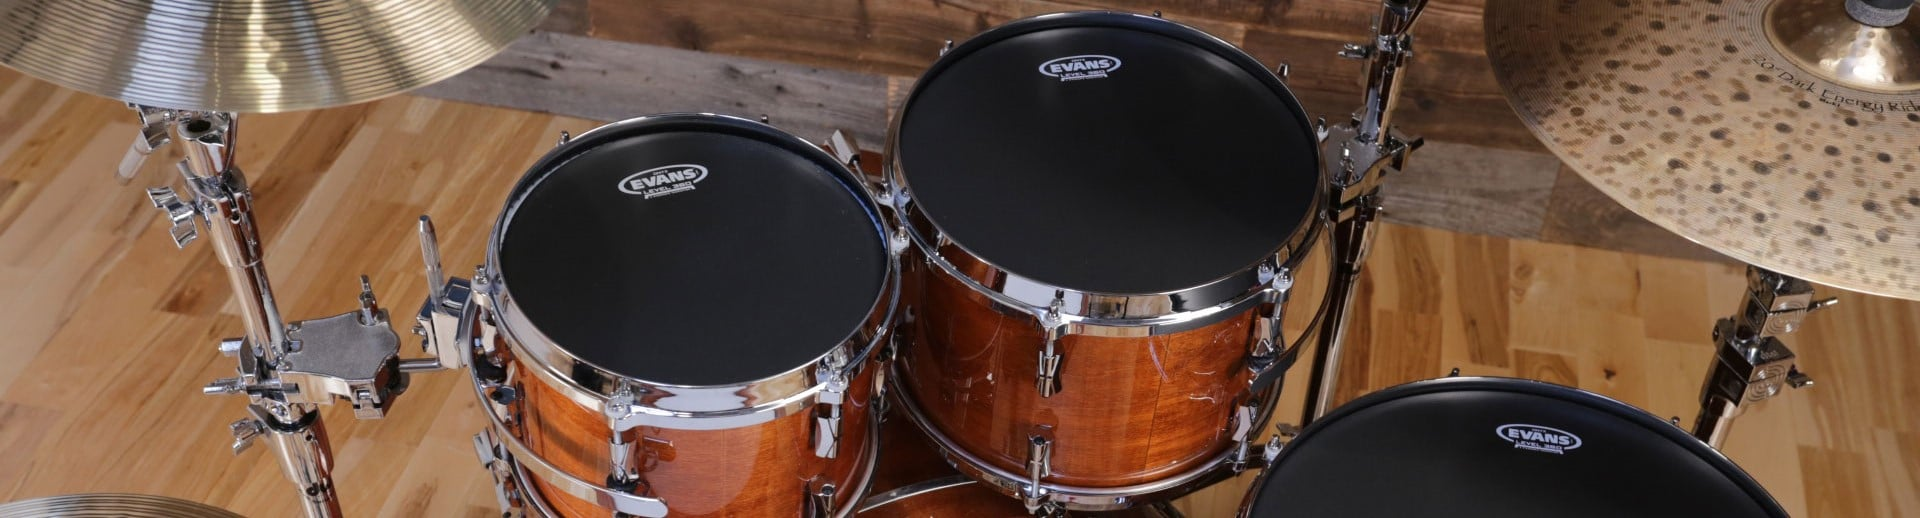 Best Drum Heads Reviewed in Detail [Jan. 2020]